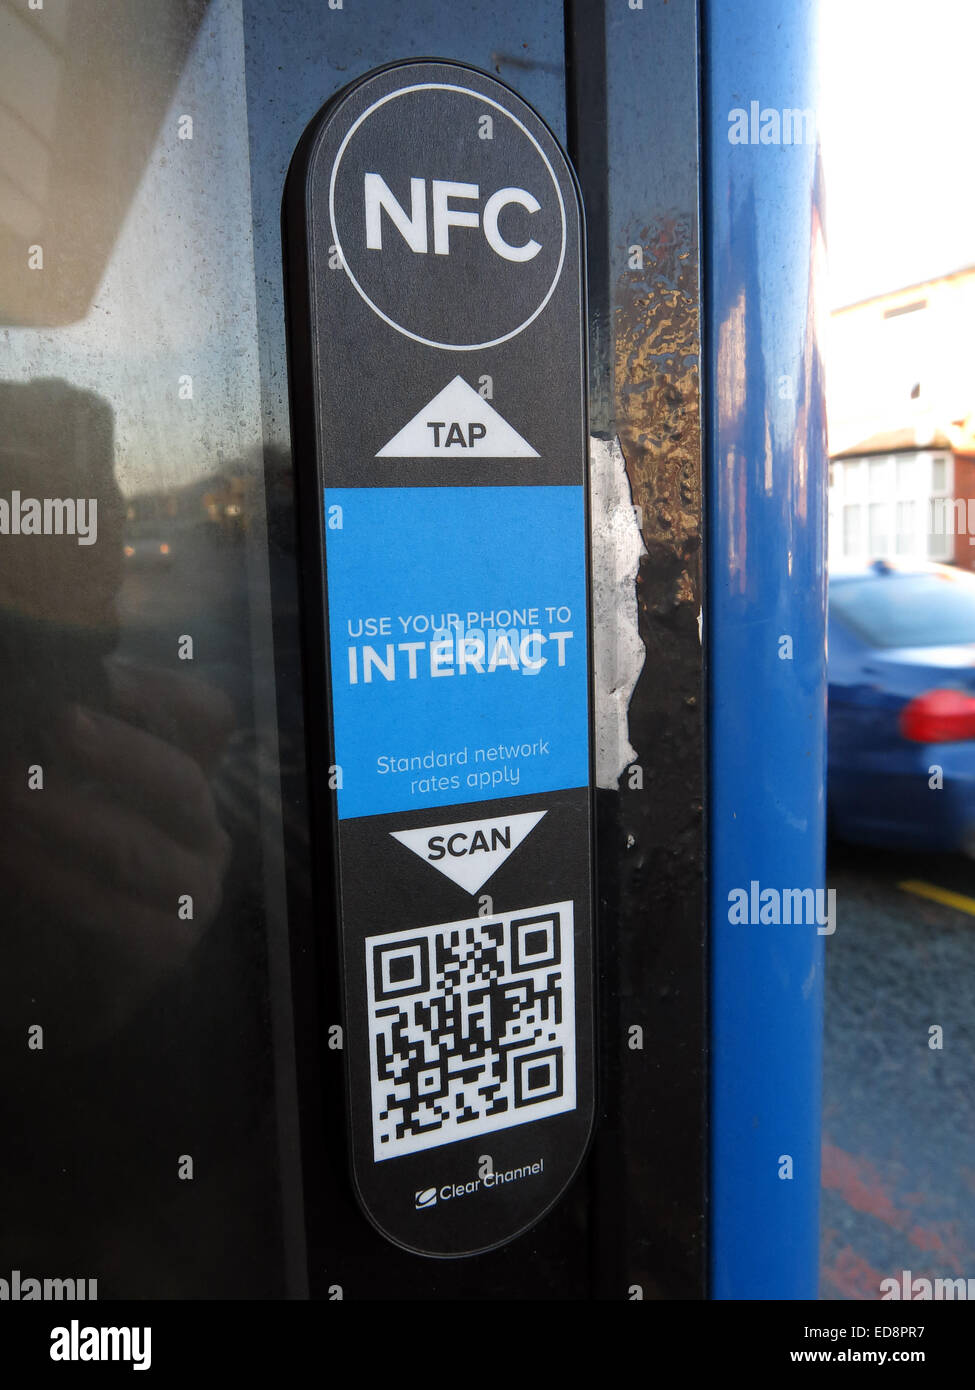 NFC Near Field Communication link on Clear Channel bus shelter ad, Grappenhall, Warrington, Cheshire, England, UK - Stock Image